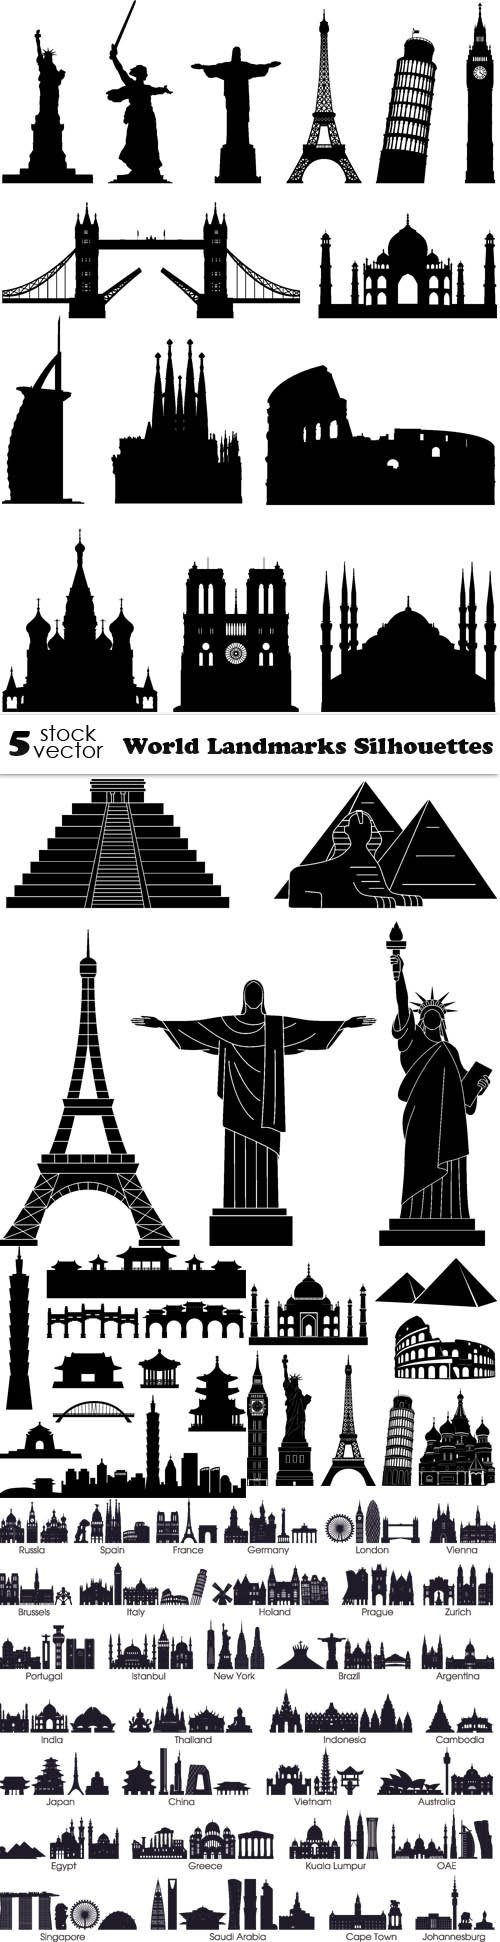 Vectors - World Landmarks Silhouettes